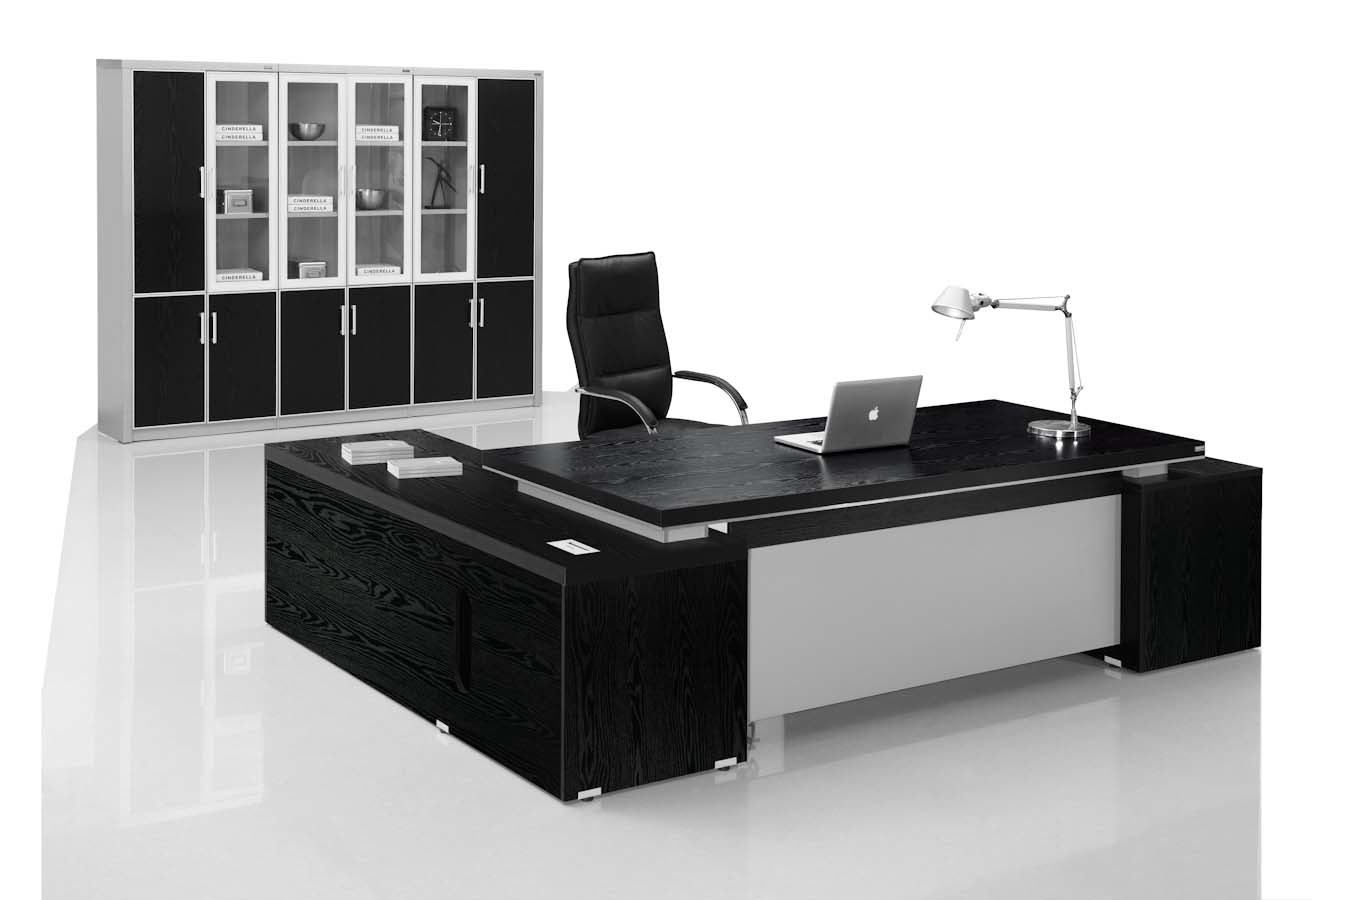 Image of: China Foshan Luxury Office Table Executive Desk Wooden Furniture China Office Furniture Office Desk